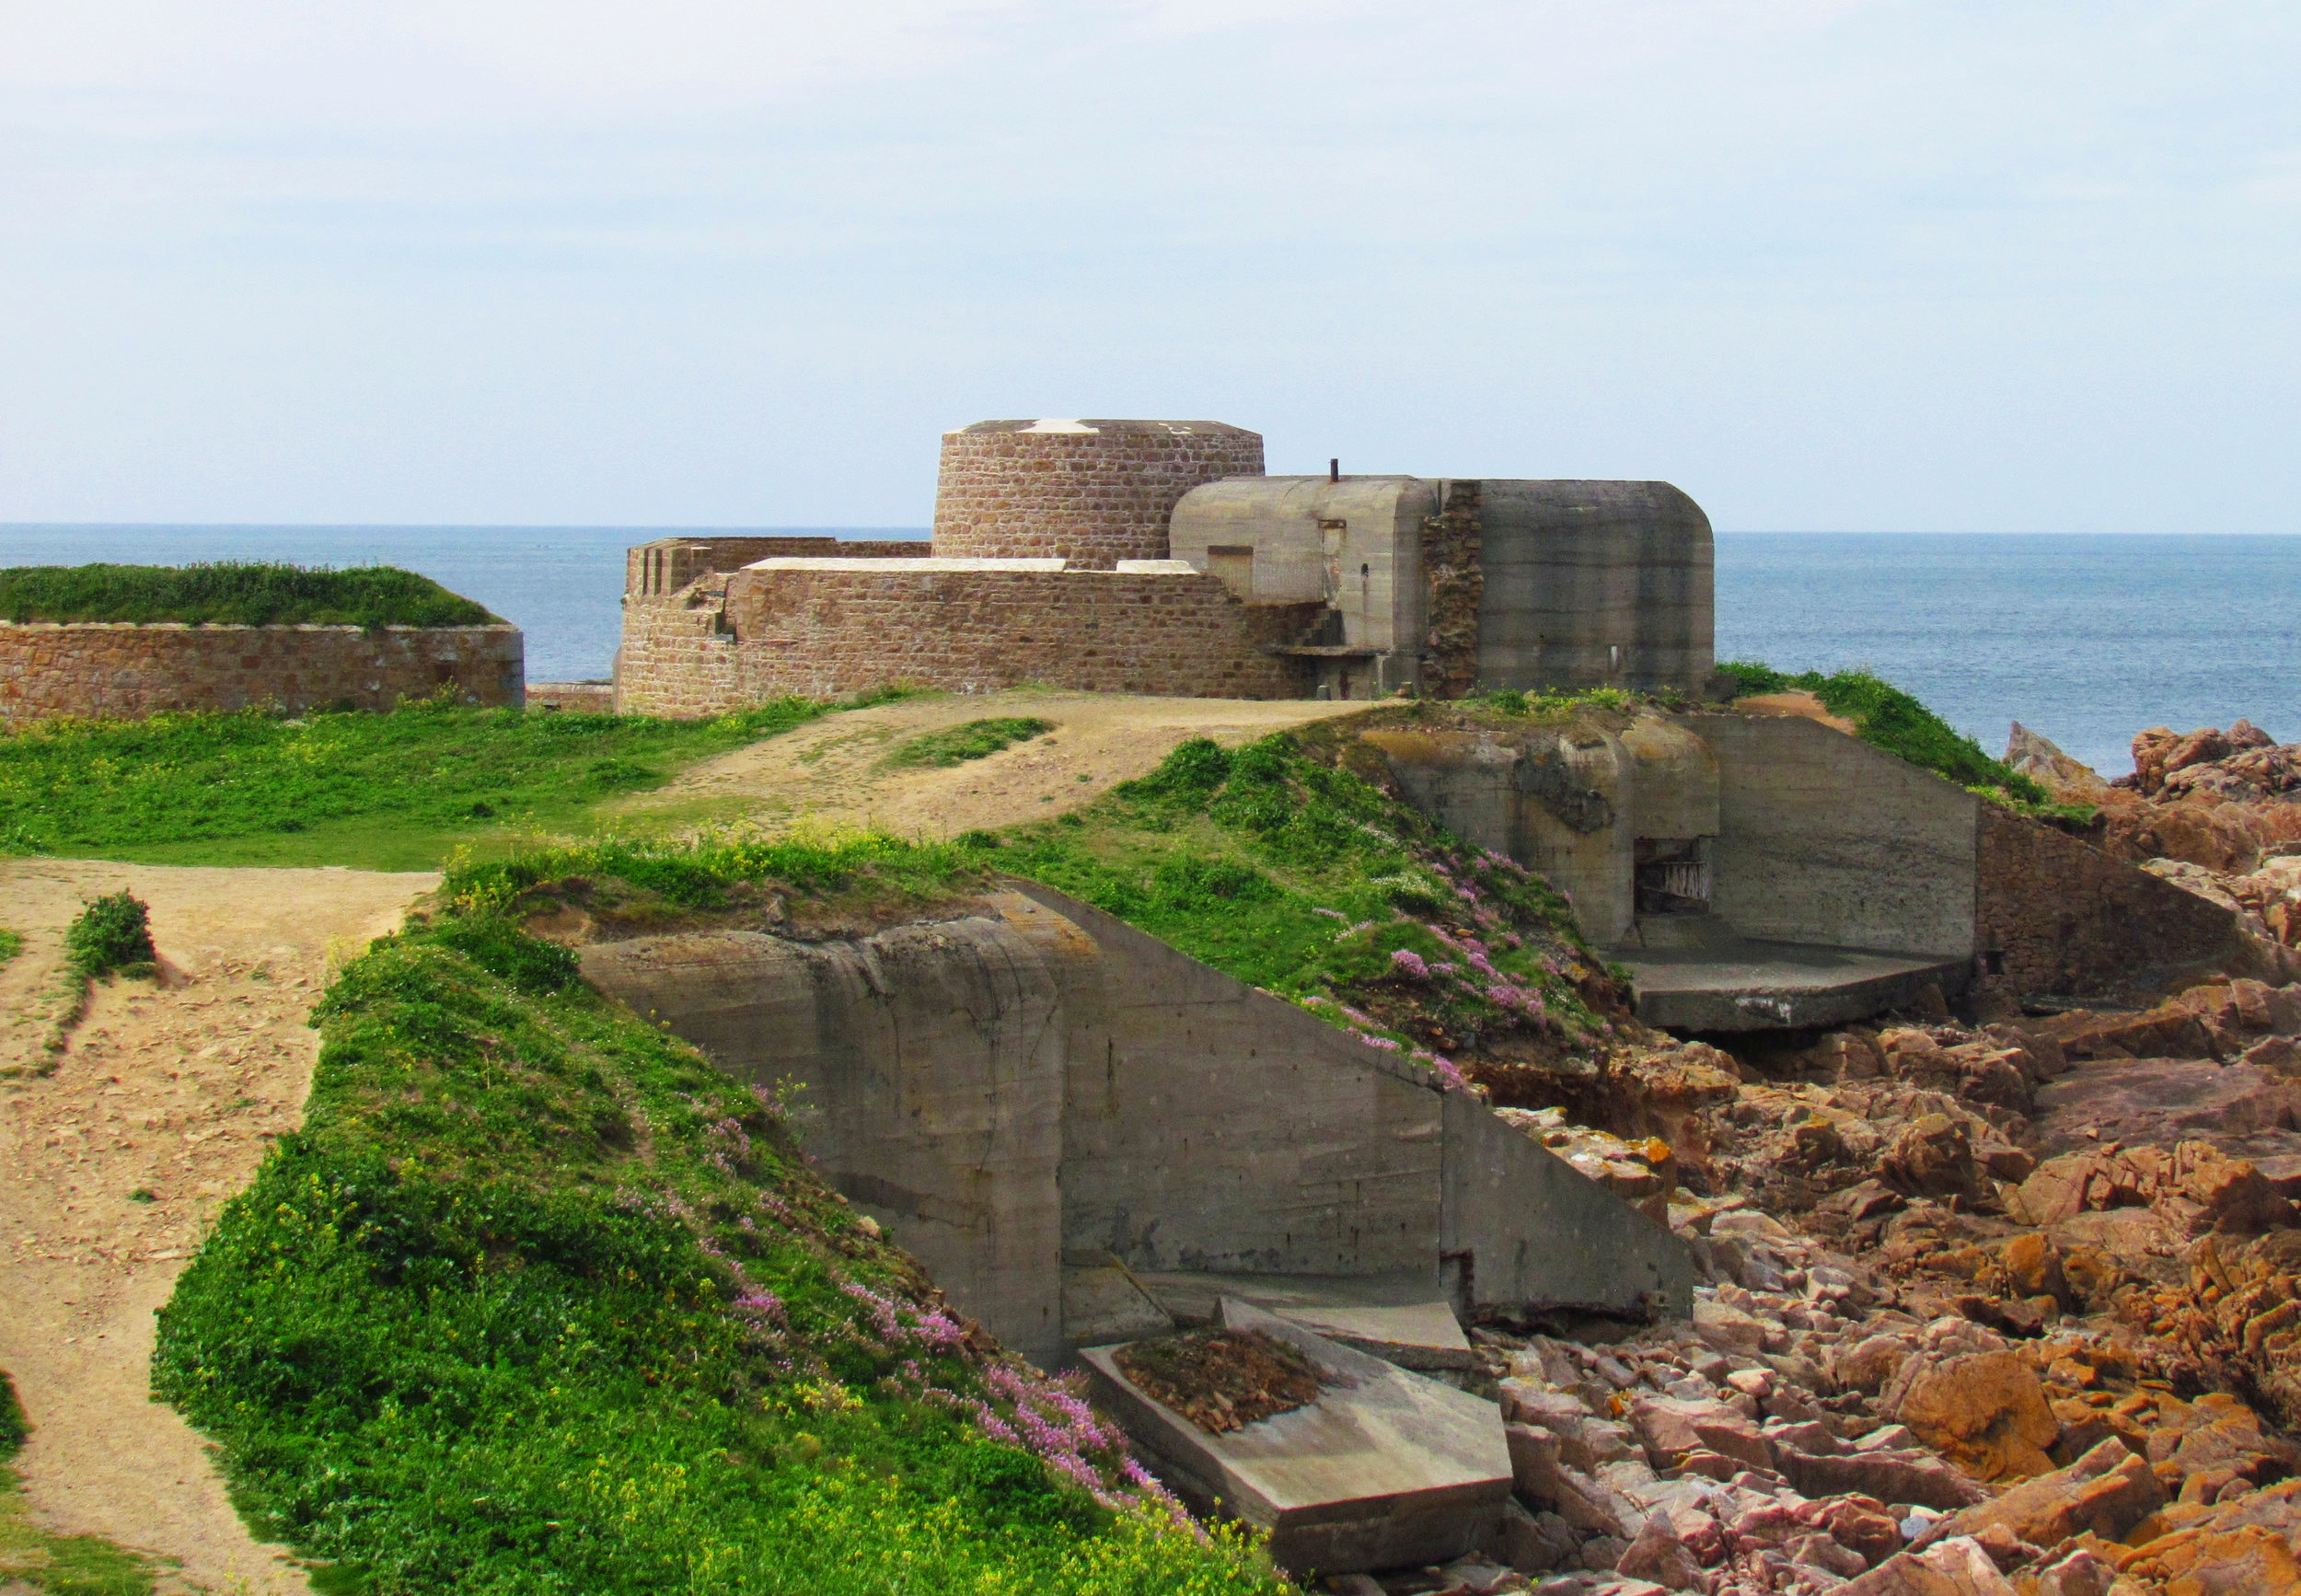 Fort Hommet à Guernesey, Îles anglo-normandes